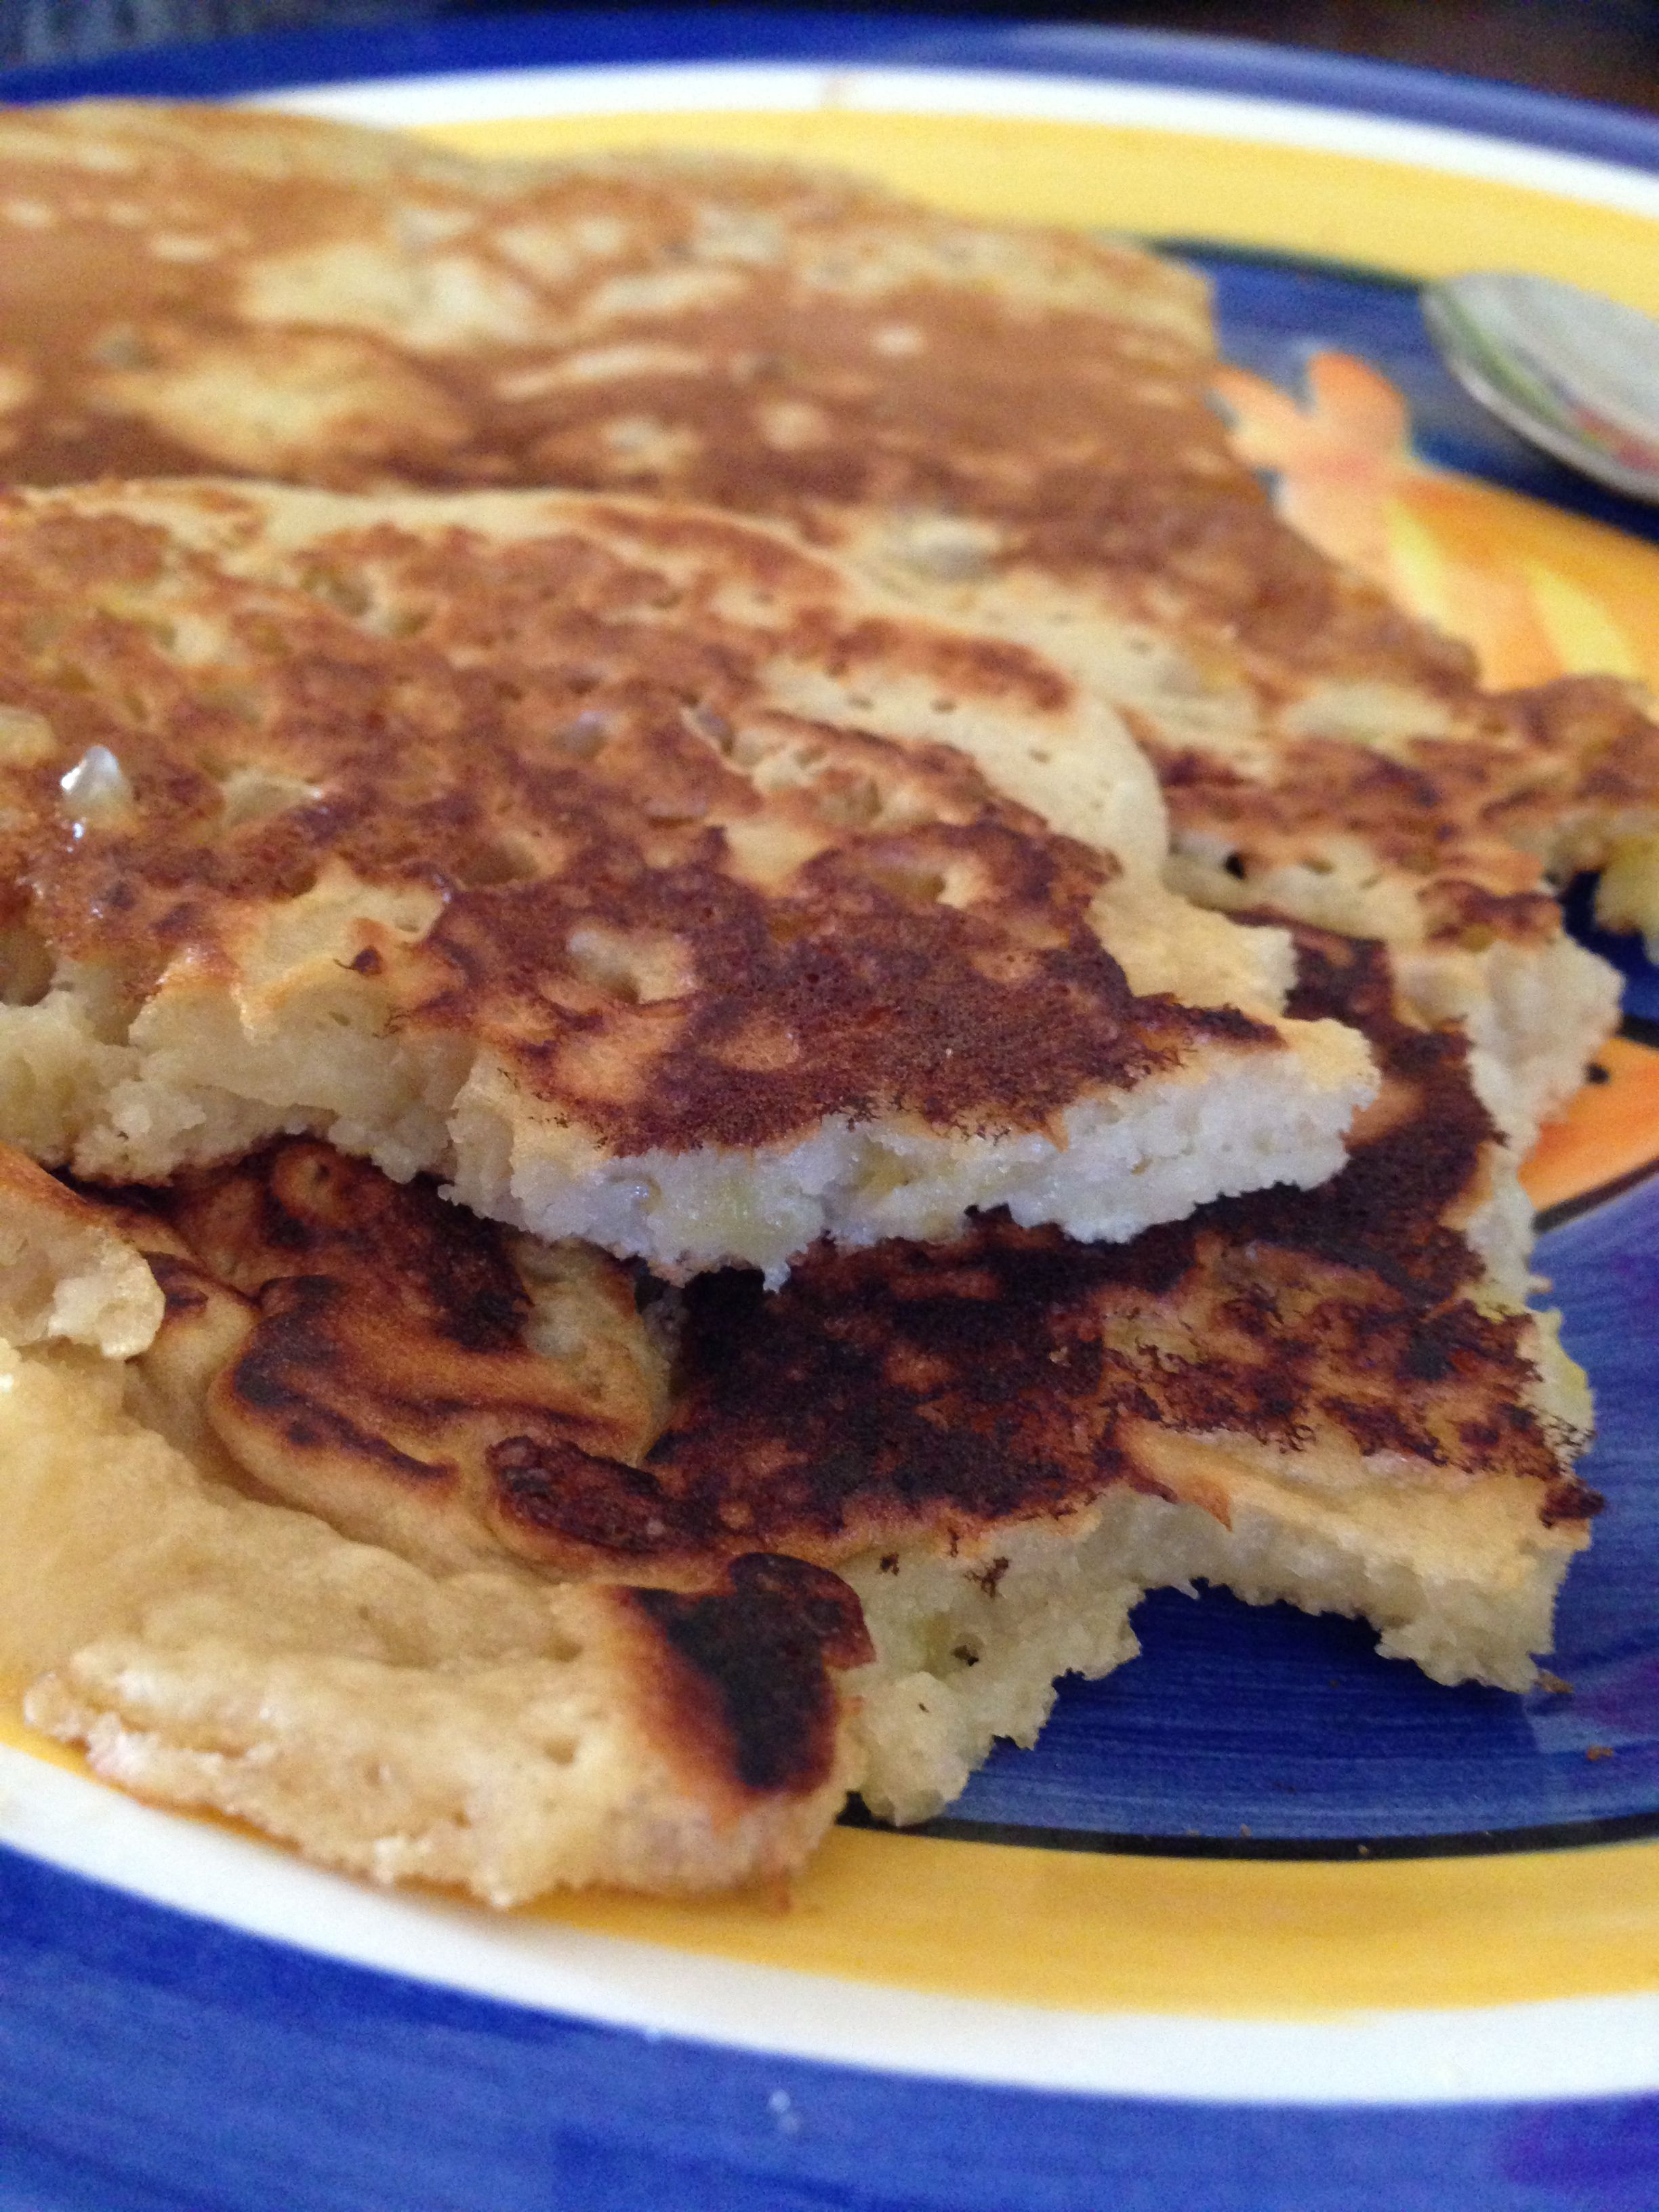 Breakfast pancakes.. I came up with this  recipe this morning and it is delicious!  1 cup whole wheat self raising flour 1 cup almond milk 1 egg 1 banana, thin slices Half an apple, peeled & sliced finely 1 tablespoon brown sugar Mix all ingredients together and cook in fry pan until golden brown.... Eat, enjoy!